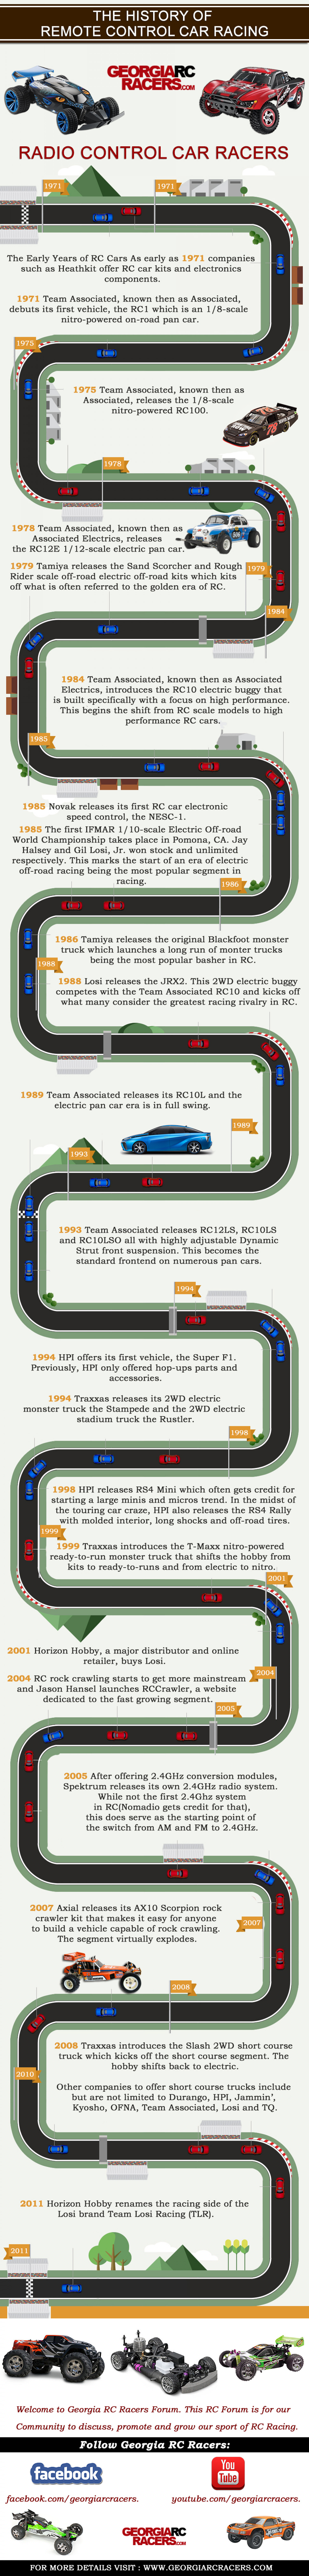 The History of Remote Control Car Racing Infographic